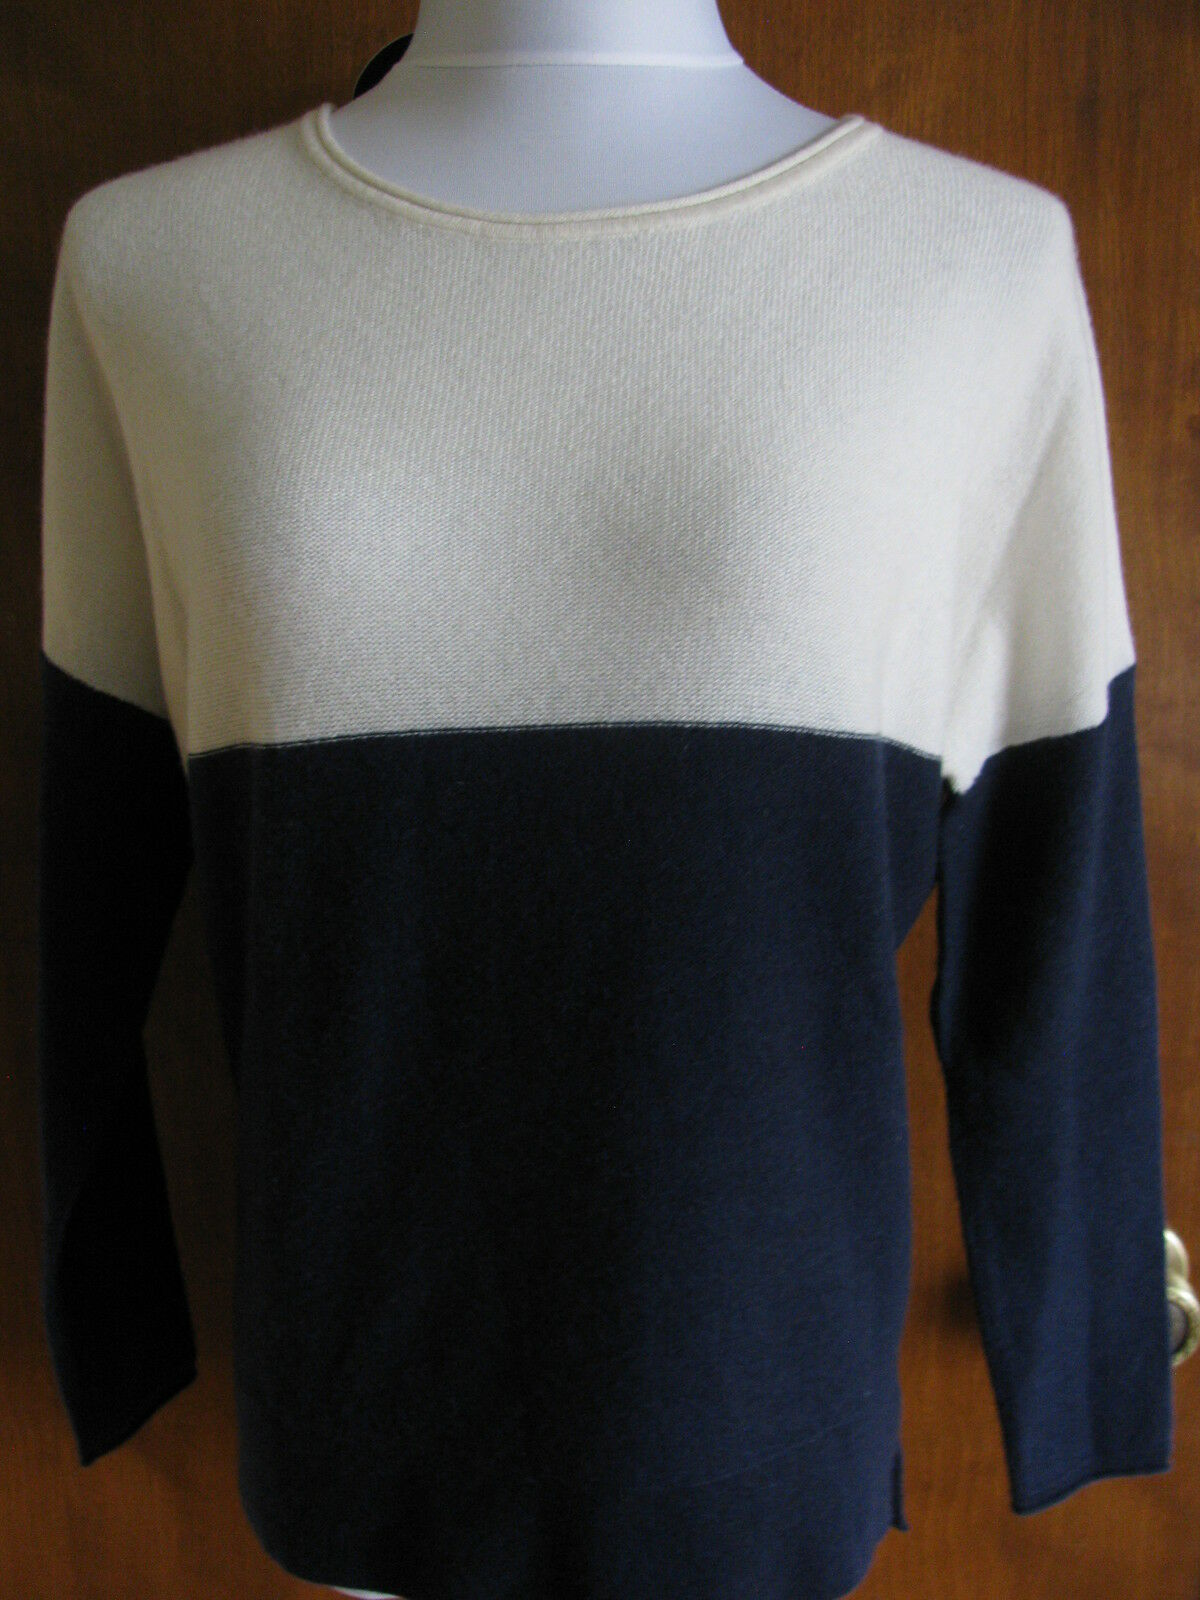 Bloomingdale's Women's White Navy 2ply Cashmere Sweater XSmall NWT